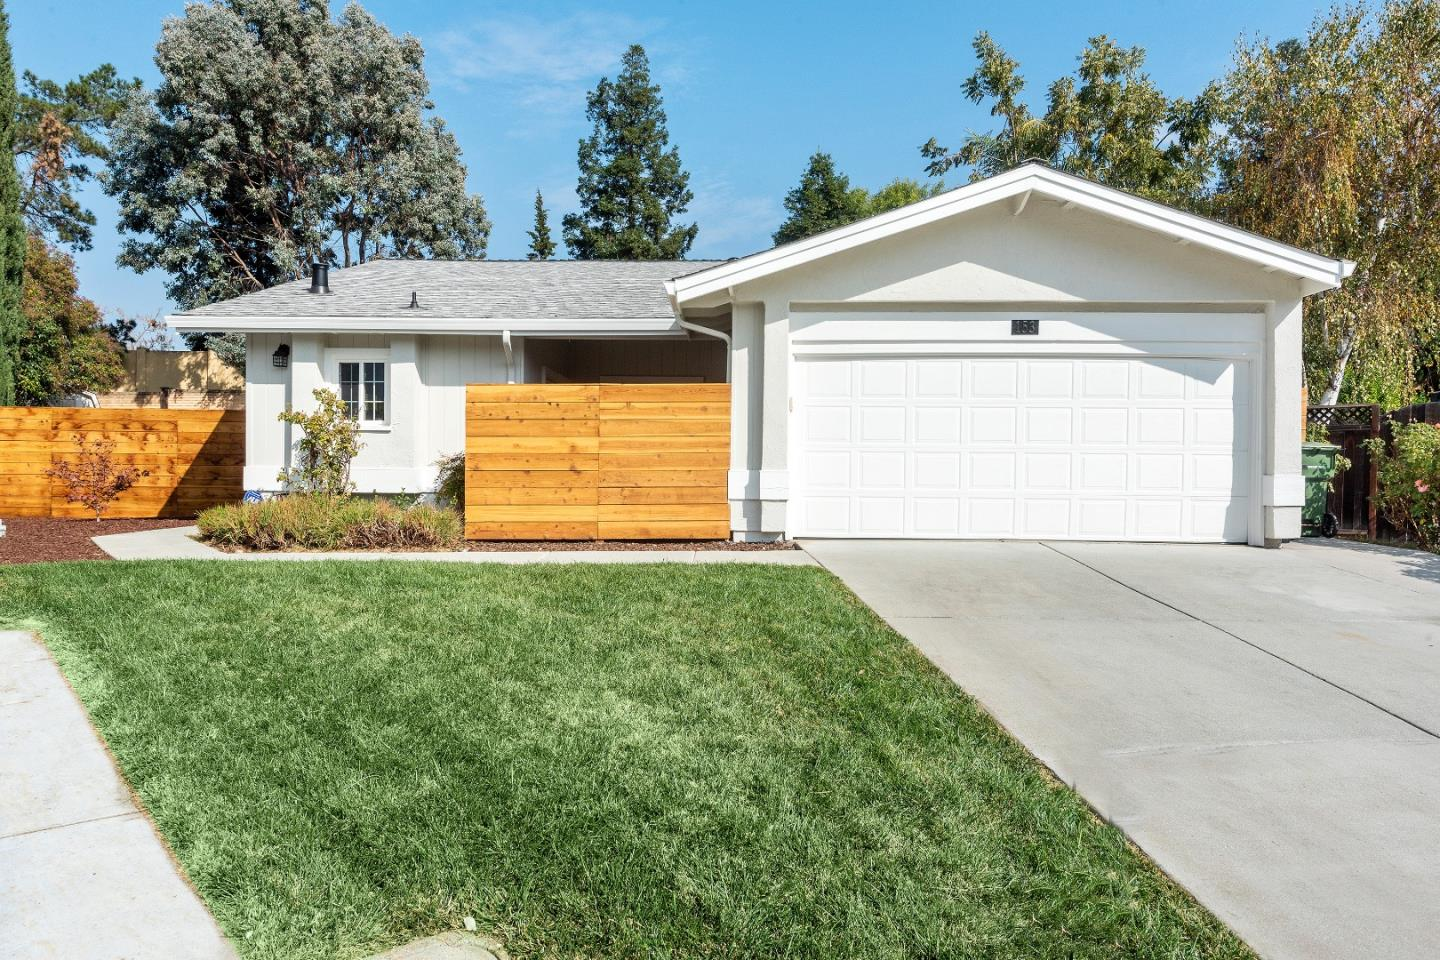 153 Southview CT, Evergreen in Santa Clara County, CA 95138 Home for Sale